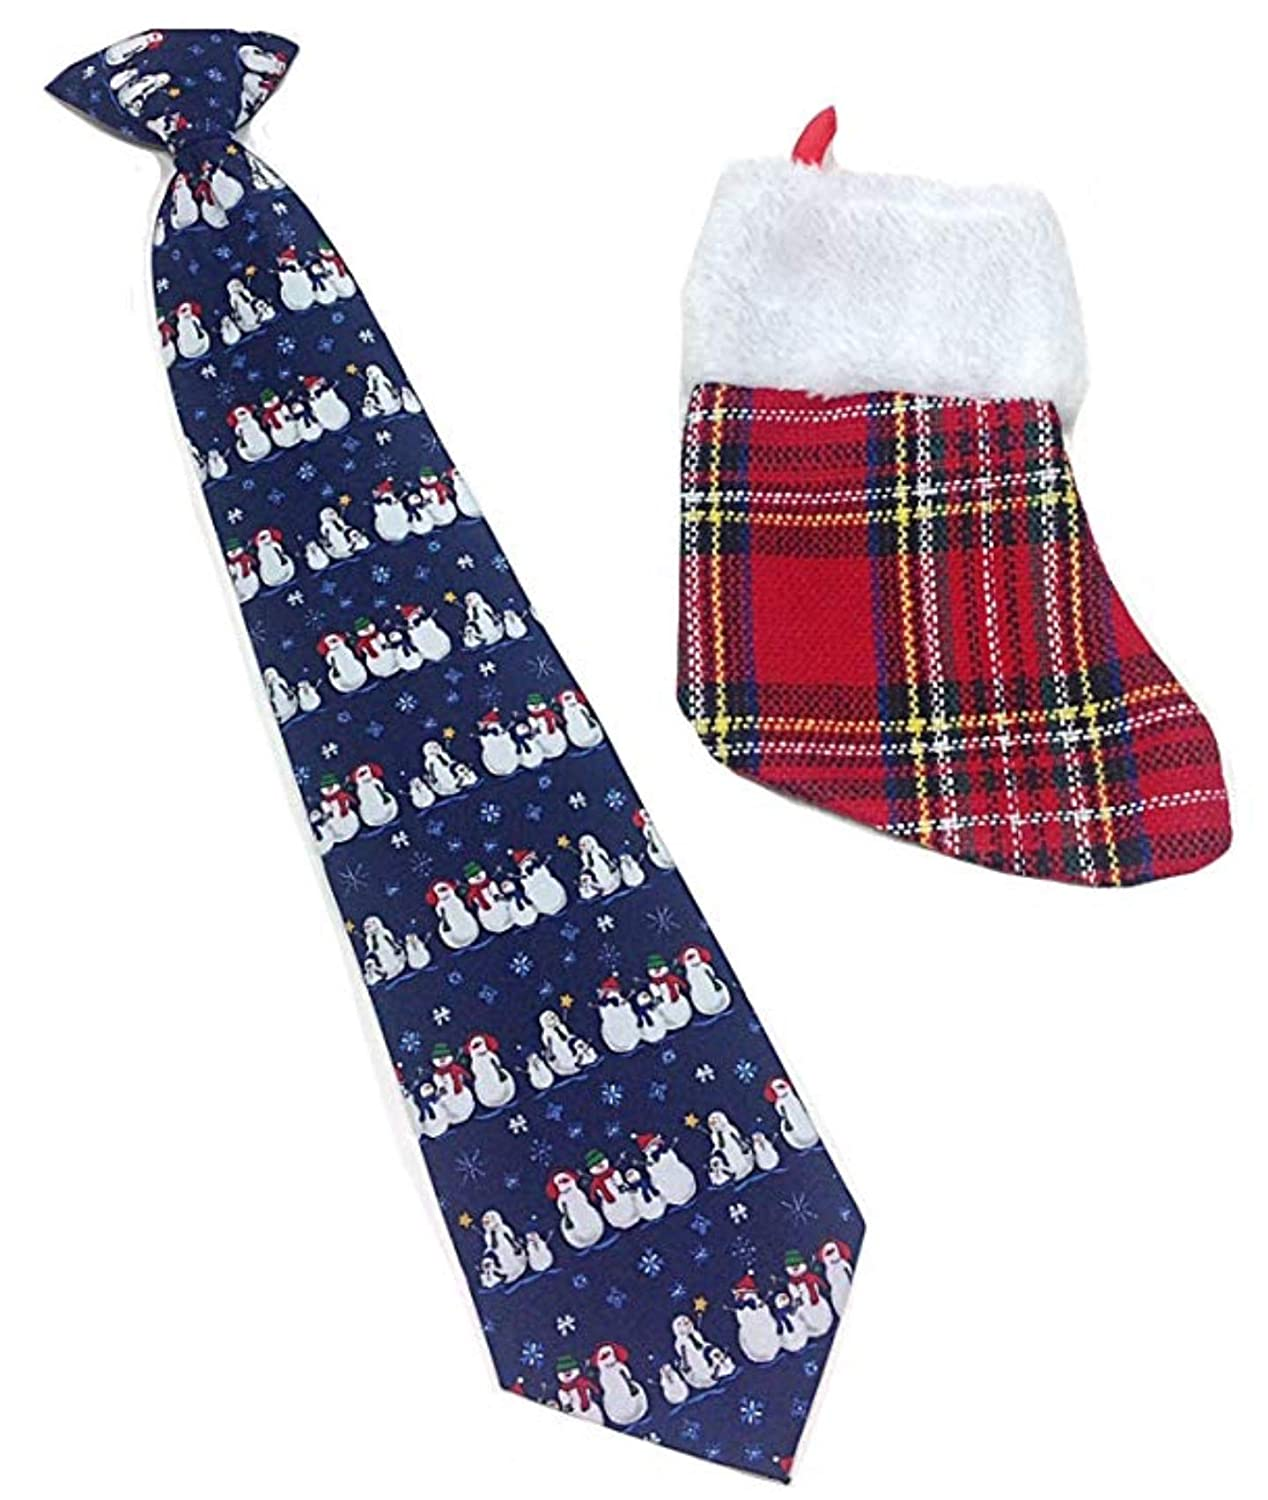 Boys Snowman Christmas Novelty Necktie & Gift Stocking - Navy Blue